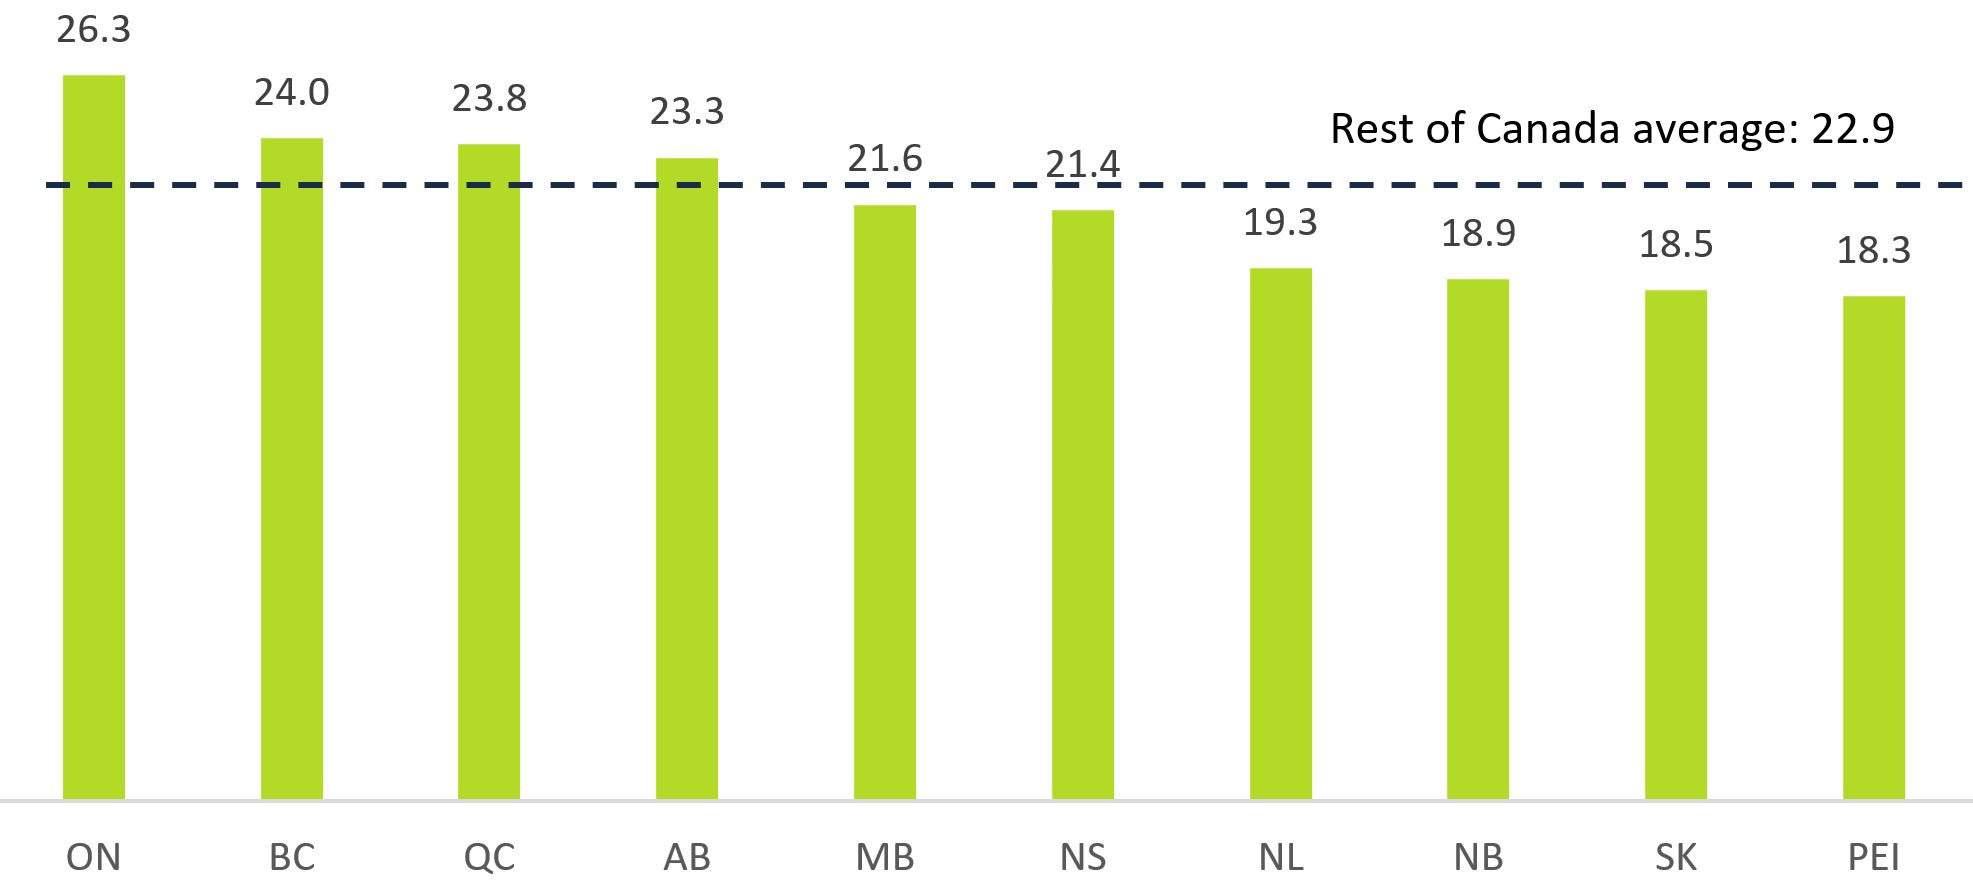 This chart shows the average commute times for drivers by province in 2016 in minutes. The chart shows that the average commute time to work for drivers in Ontario was 26.3 minutes, 24.0 minutes in British Columbia, 23.8 minutes in Quebec, 23.3 minutes in Alberta, 21.6 minutes in Manitoba, 21.4 minutes in Nova Scotia, 19.3 minutes in Newfoundland and Labrador, 18.9 minutes in New Brunswick, 18.5 minutes in Saskatchewan and 18.3 minutes in Prince Edward Island. This chart highlights that the average commute time to work for drivers across Canada excluding Ontario was 22.9 minutes.